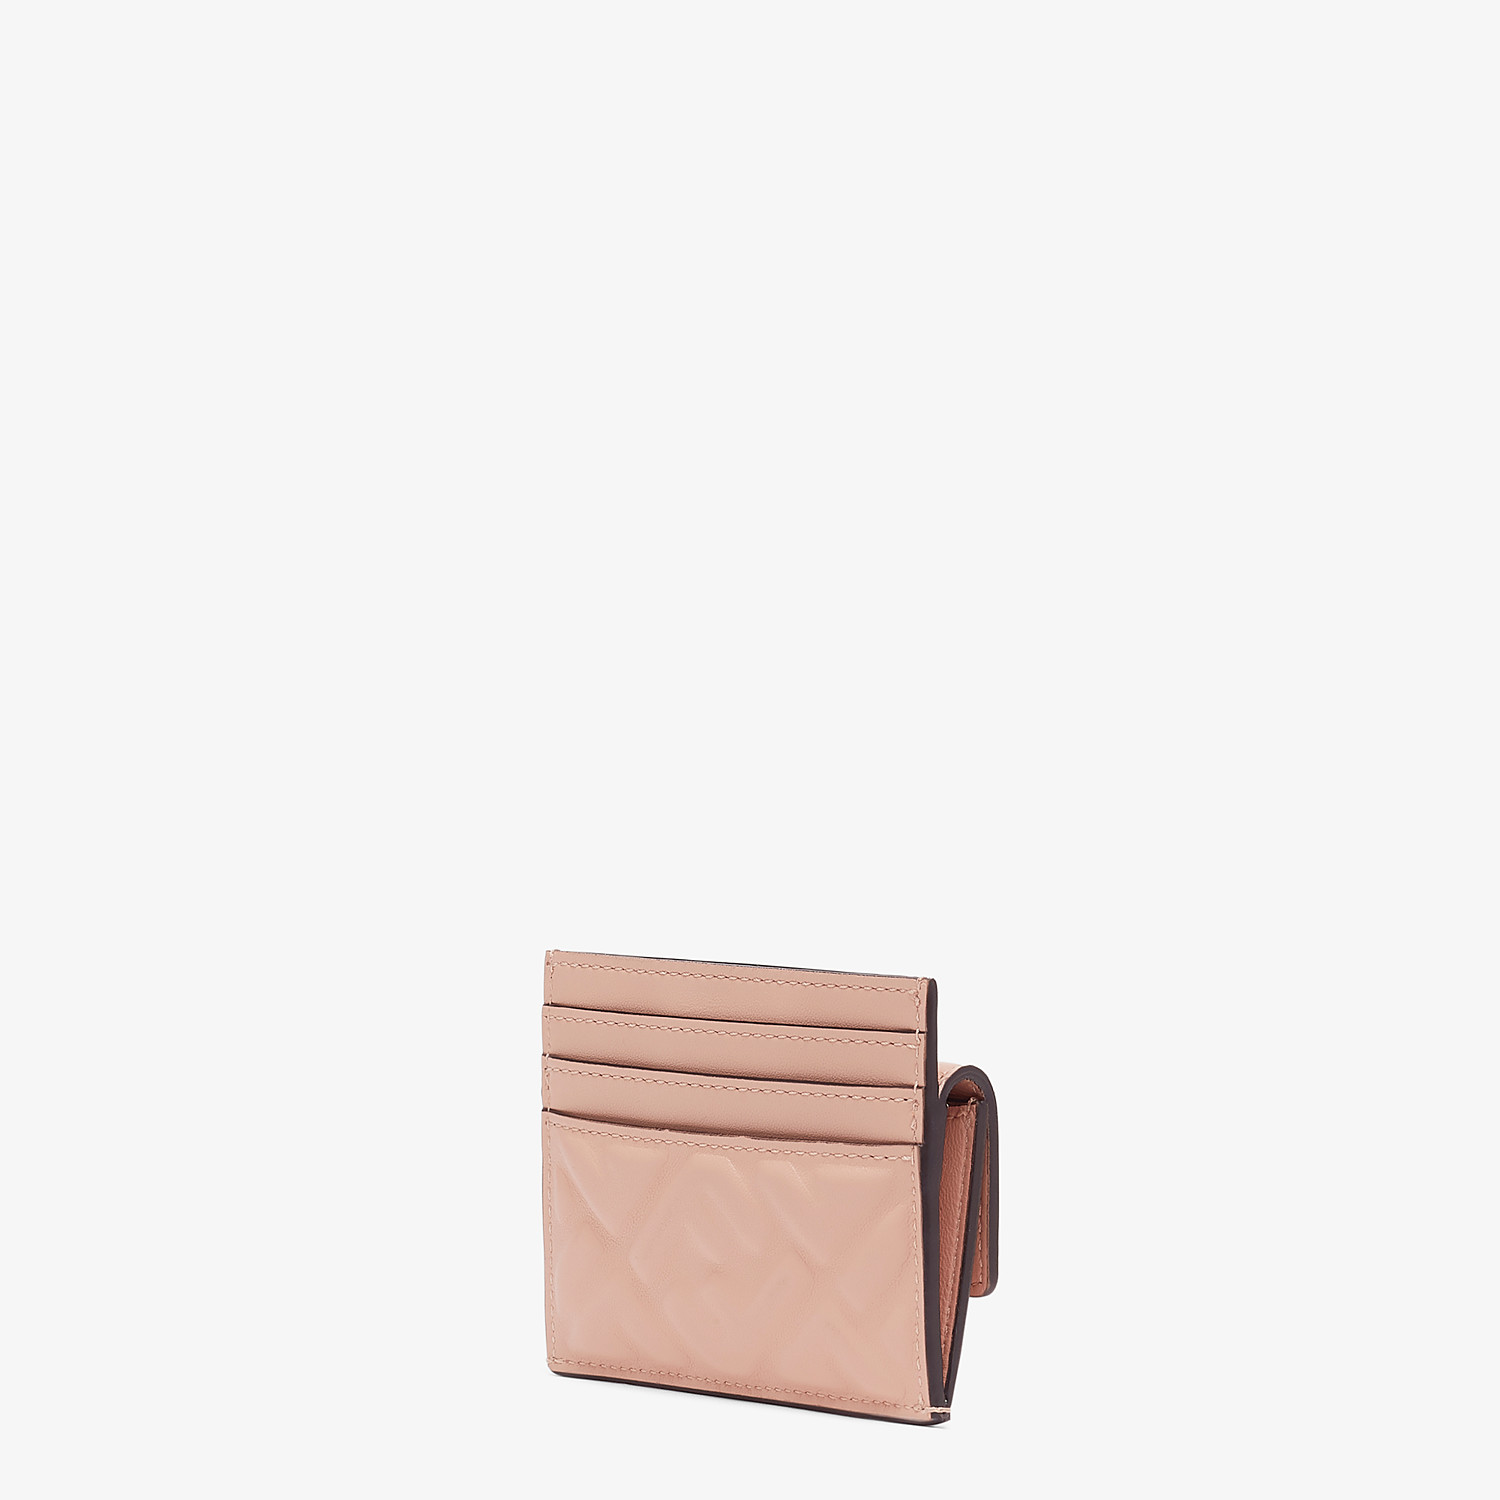 FENDI CARD HOLDER - Pink nappa leather card holder - view 2 detail